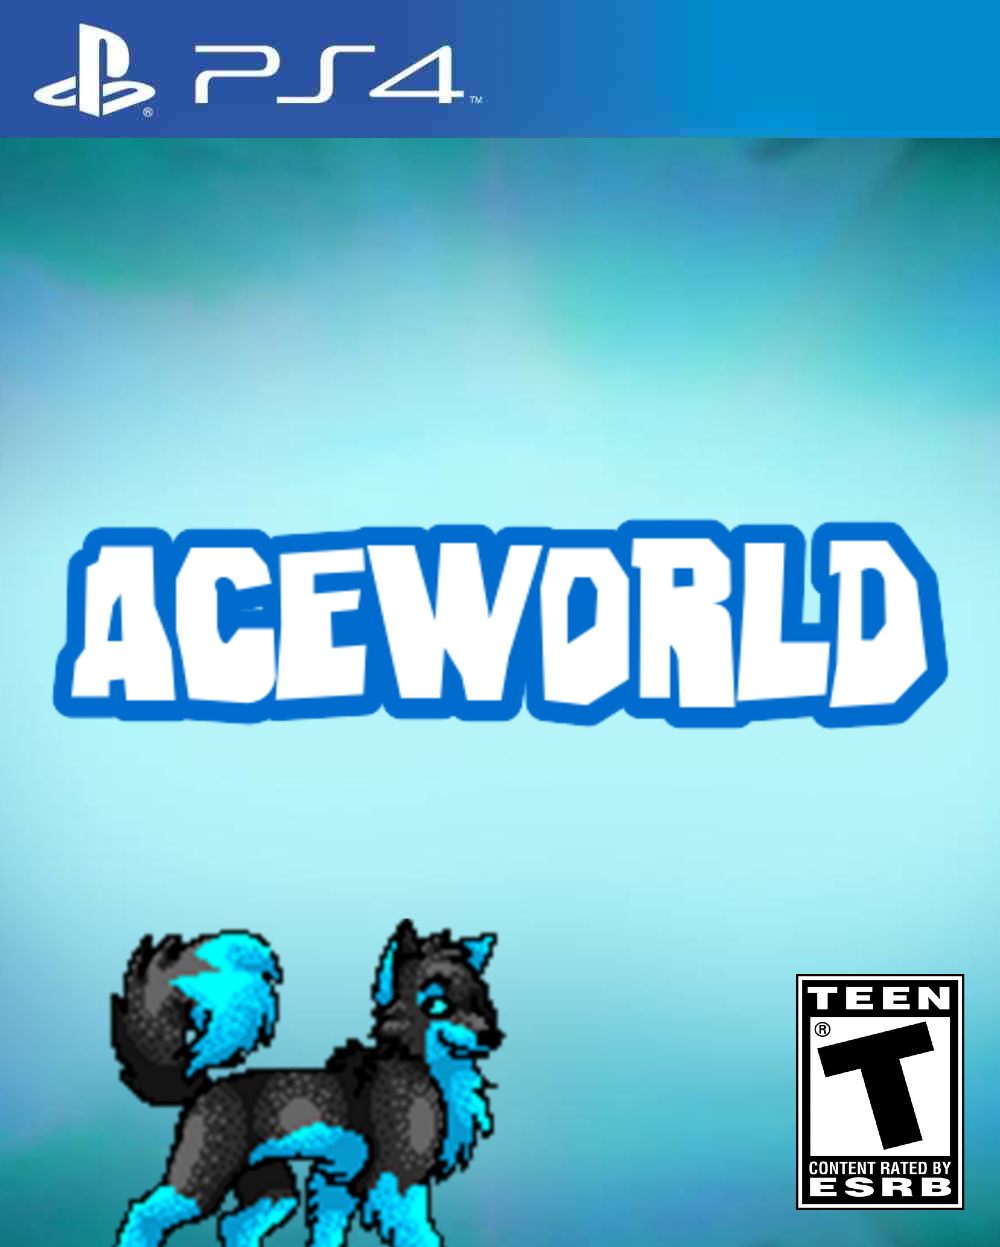 Aceworld (video game)